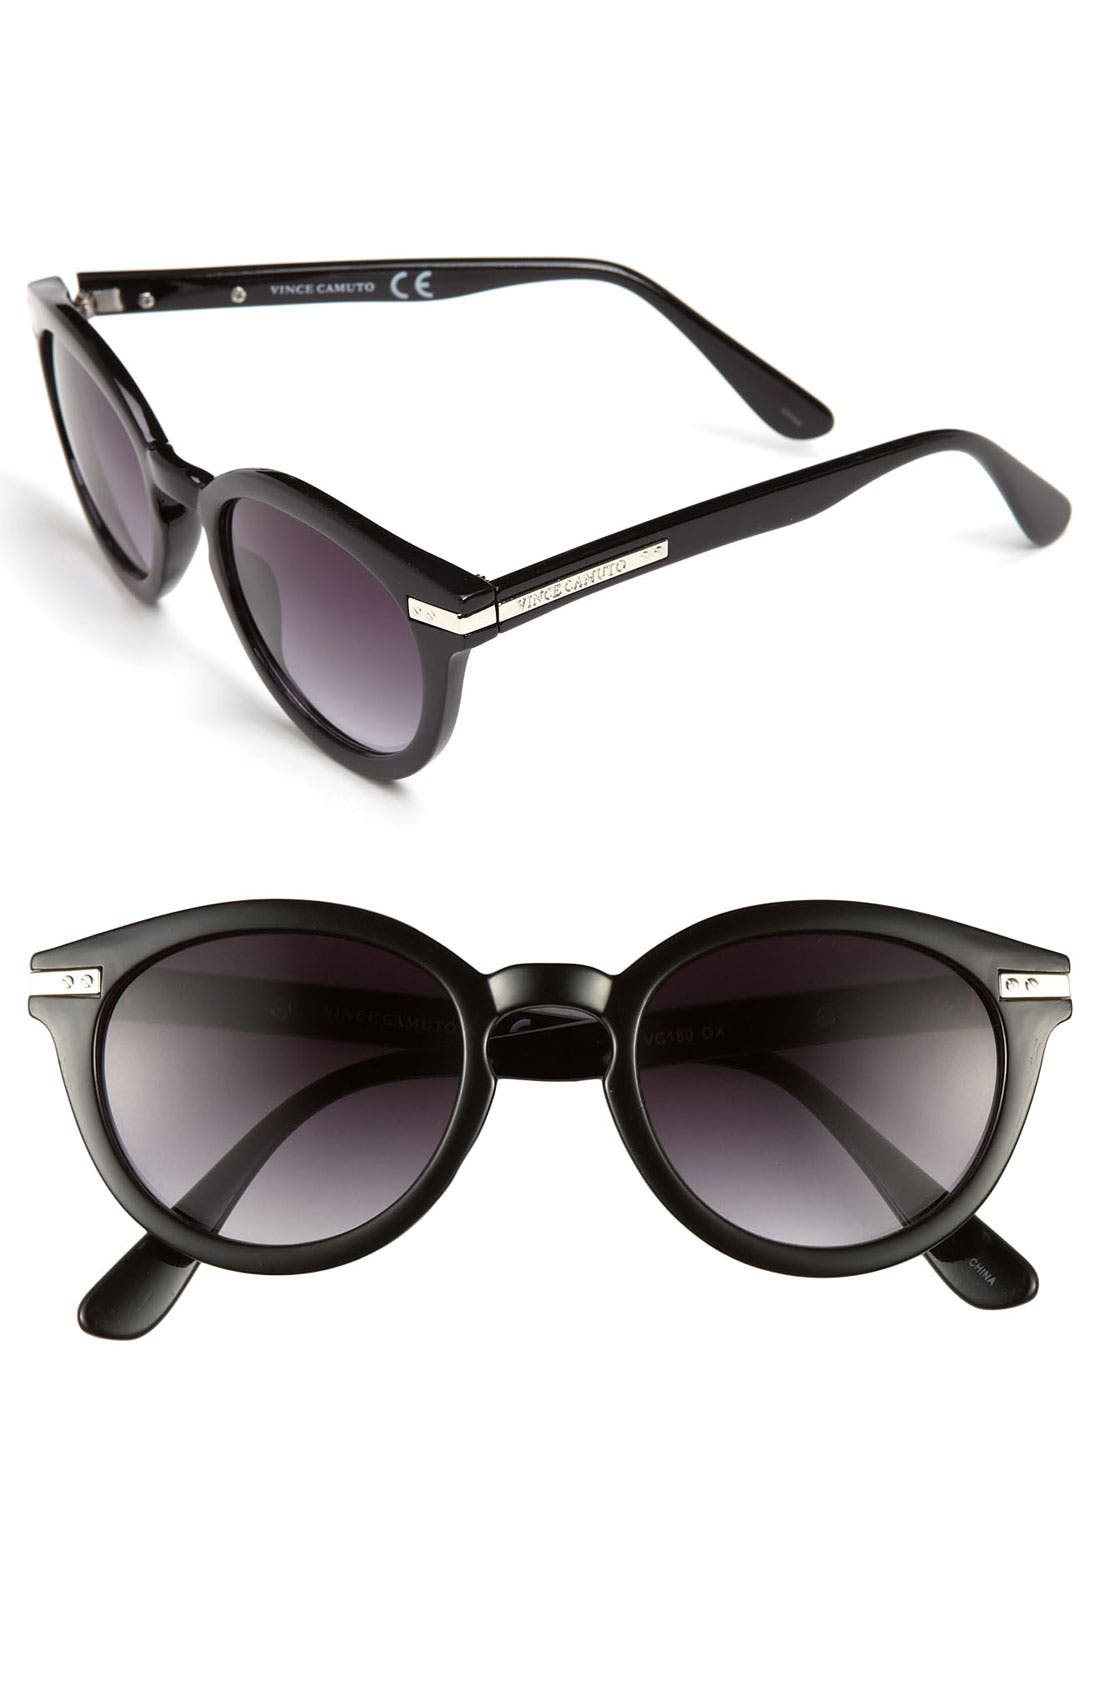 Alternate Image 1 Selected - Vince Camuto 50mm Vintage Round Sunglasses